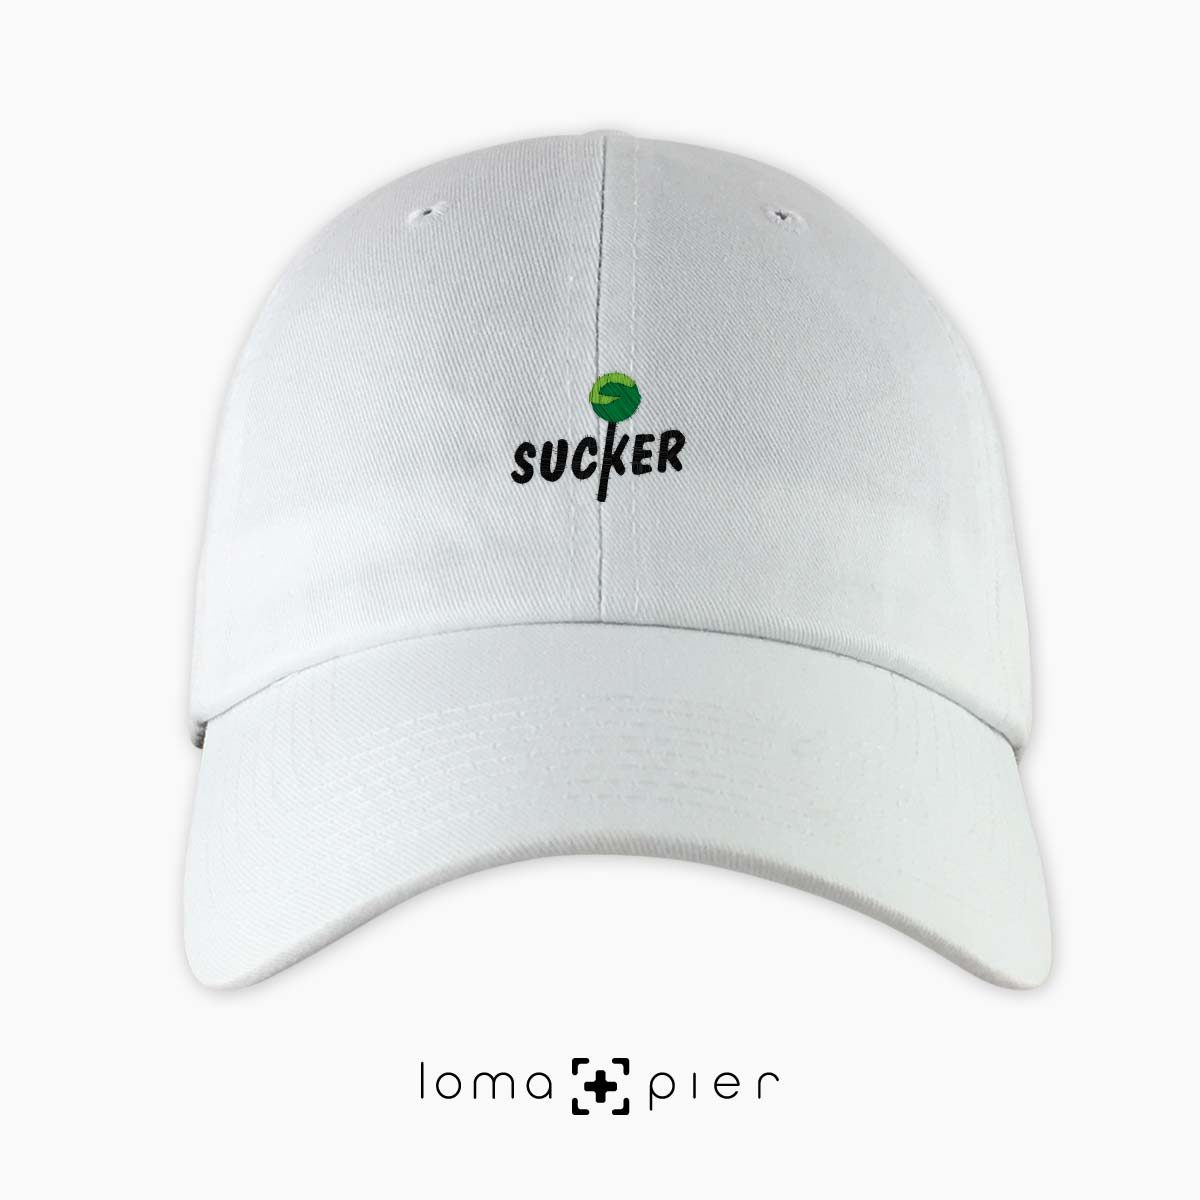 SUCKER icon embroidered on a white unstructured dad hat with multicolor thread by loma+pier hat store made in the USA